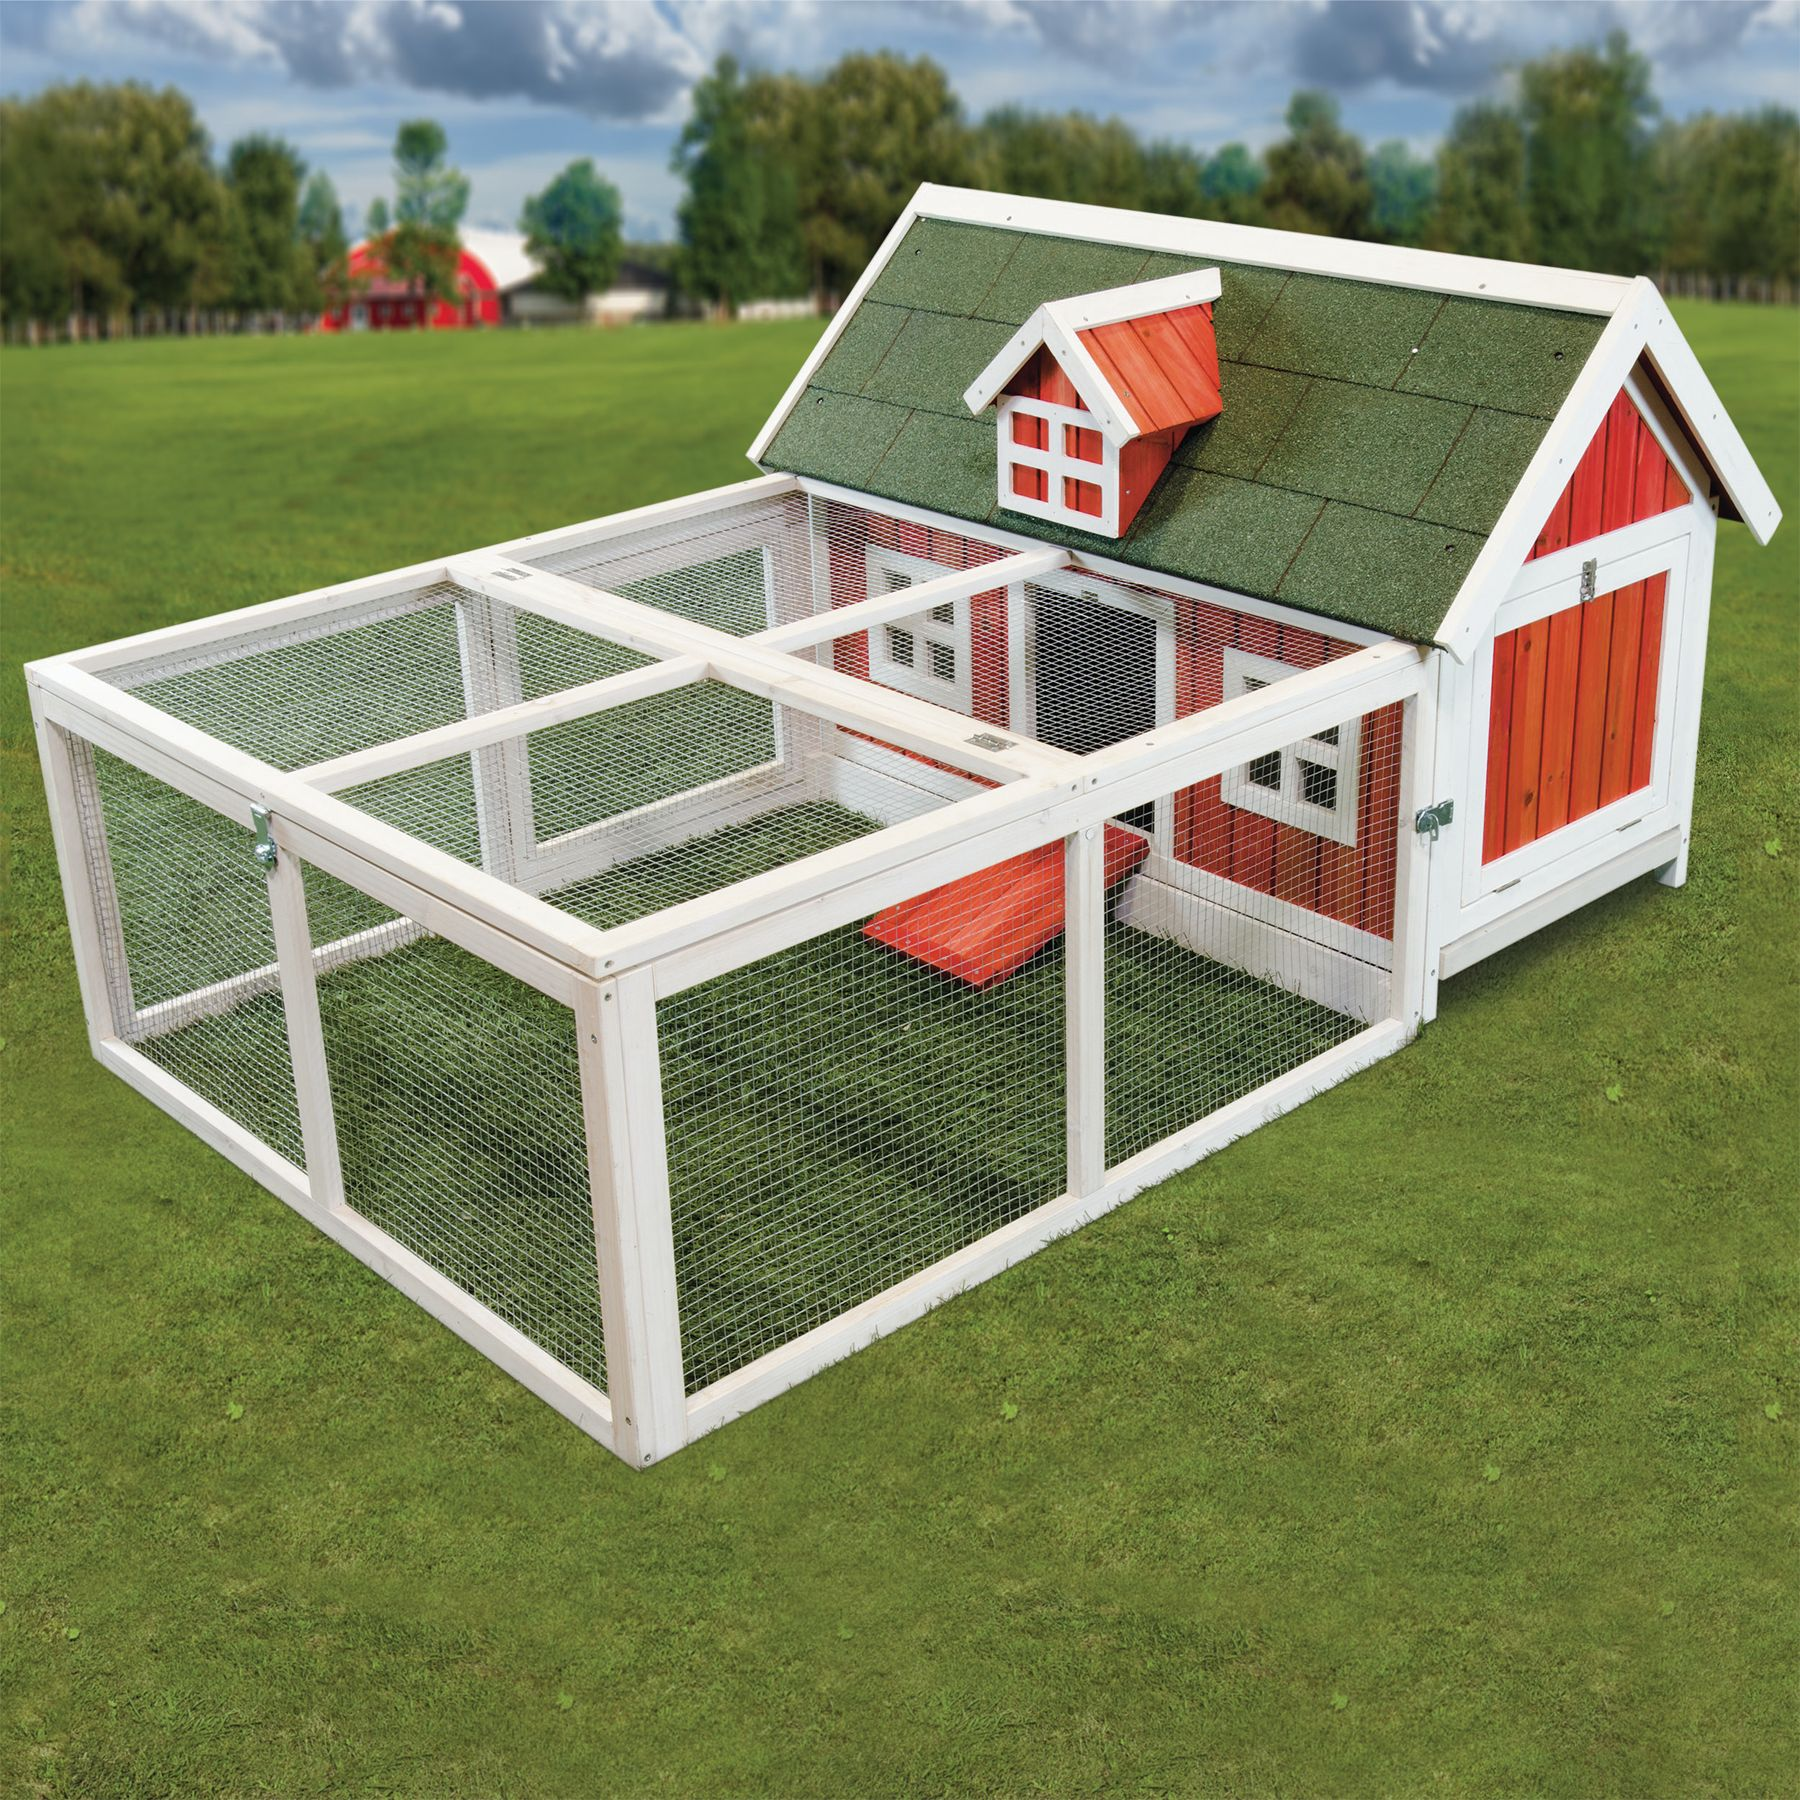 Ware Little Red Hen Barn Size One Size